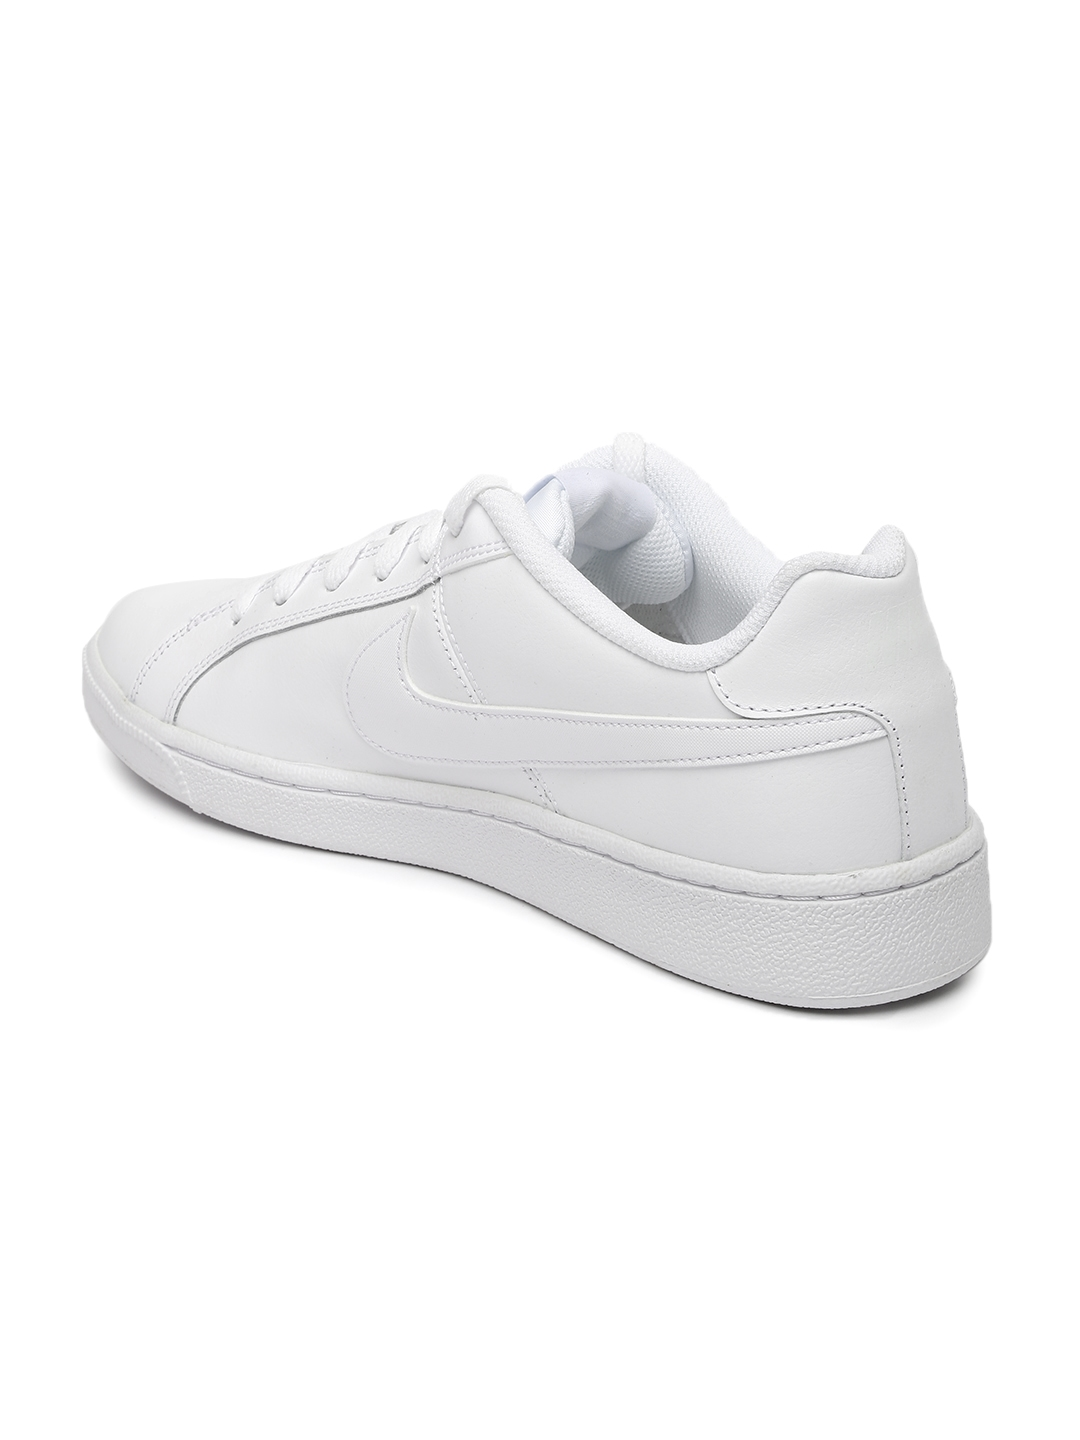 3dbfa571de488 Buy Nike Men White Solid Court Royale Sneakers - Casual Shoes for ...